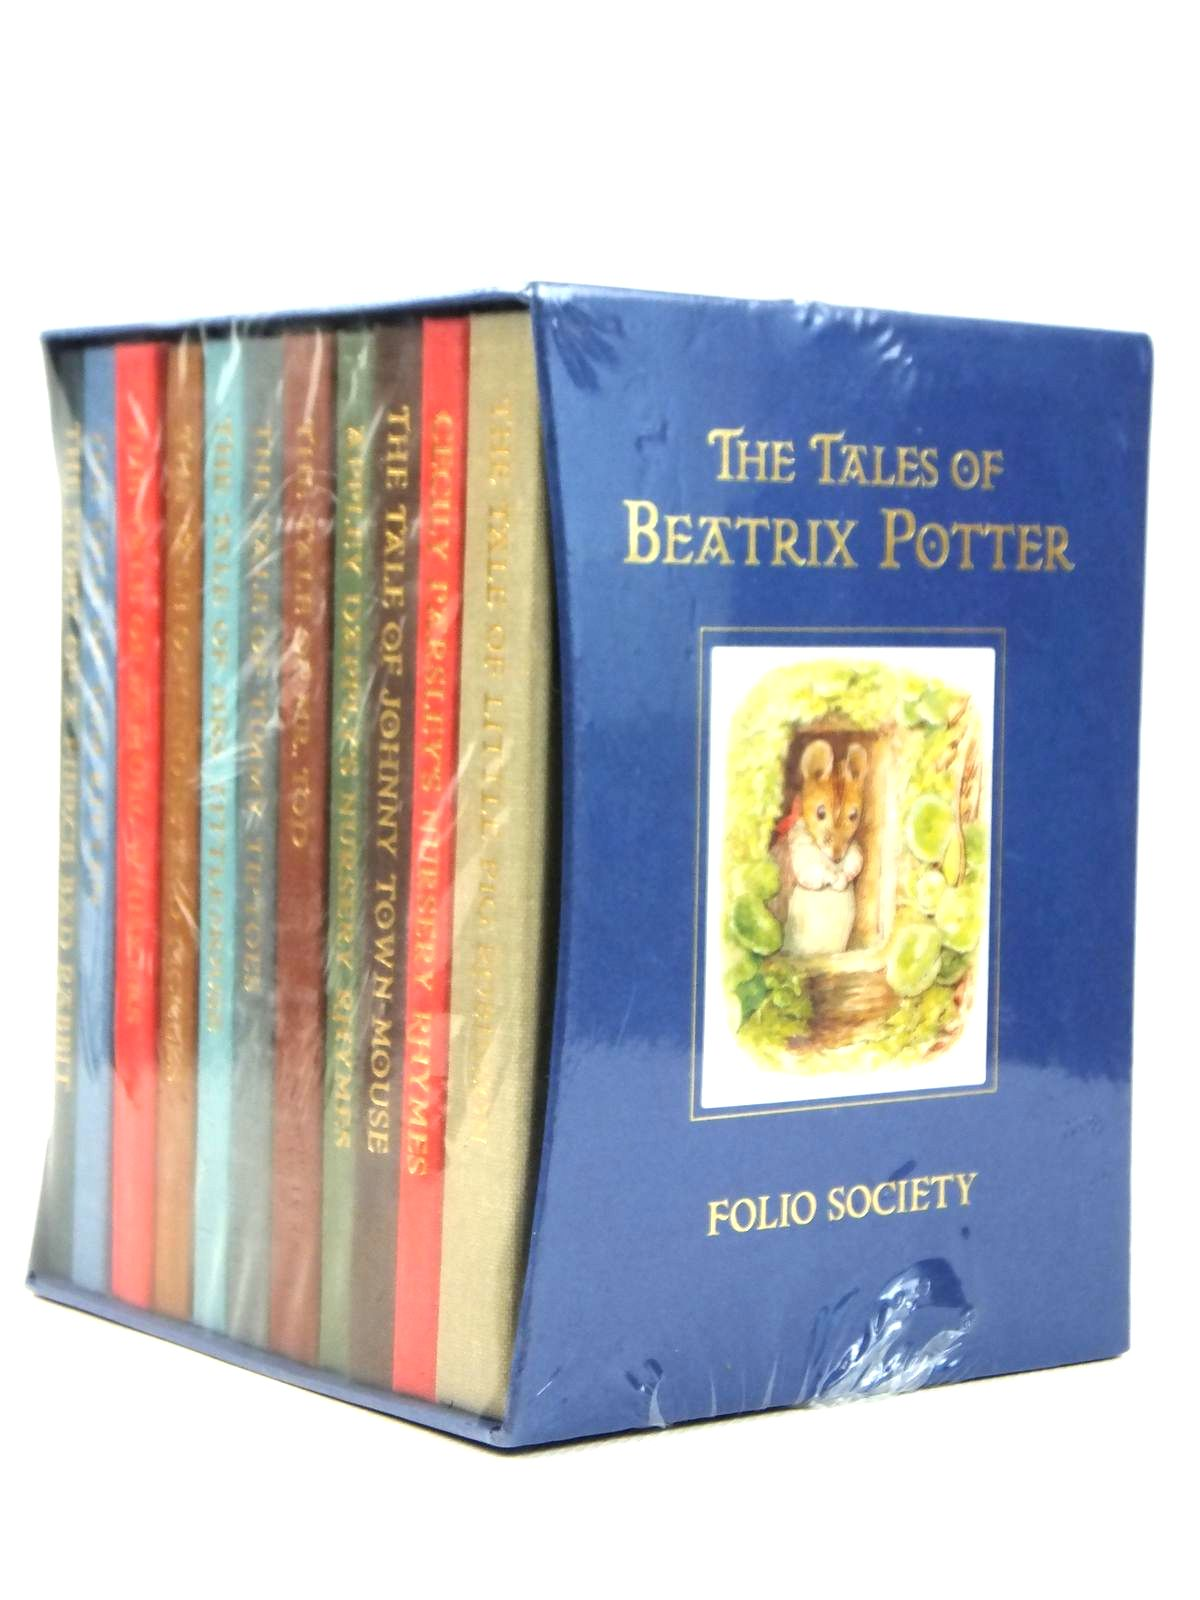 Photo of THE TALES OF BEATRIX POTTER written by Potter, Beatrix illustrated by Potter, Beatrix published by Folio Society (STOCK CODE: 2122155)  for sale by Stella & Rose's Books